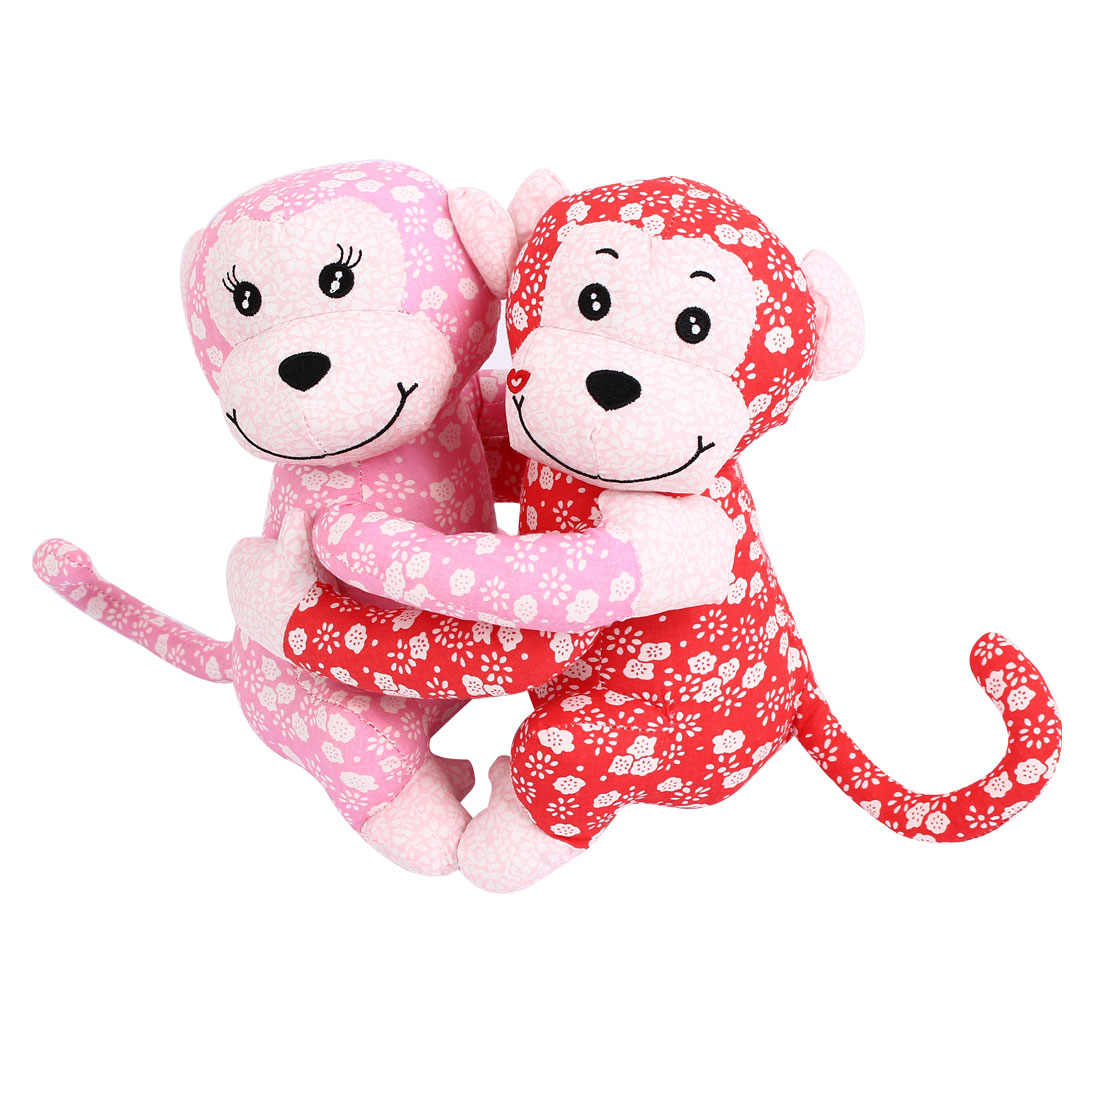 Flower Pattern Wedding Party Gift Animal Toy Couple Hug Monkey Doll Red Pink